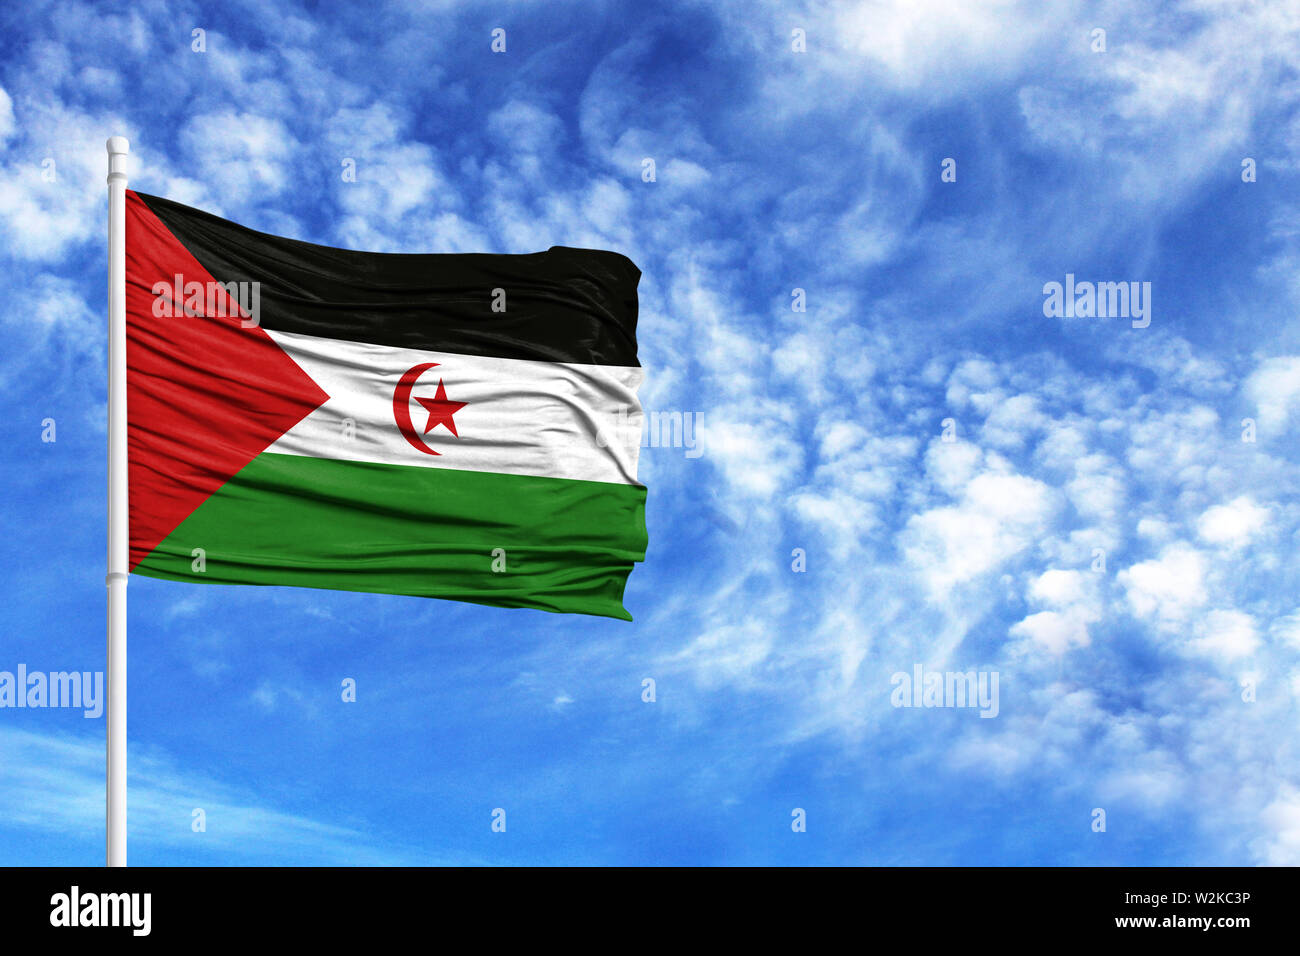 National flag of Western Sahara on a flagpole in front of blue sky - Stock Image